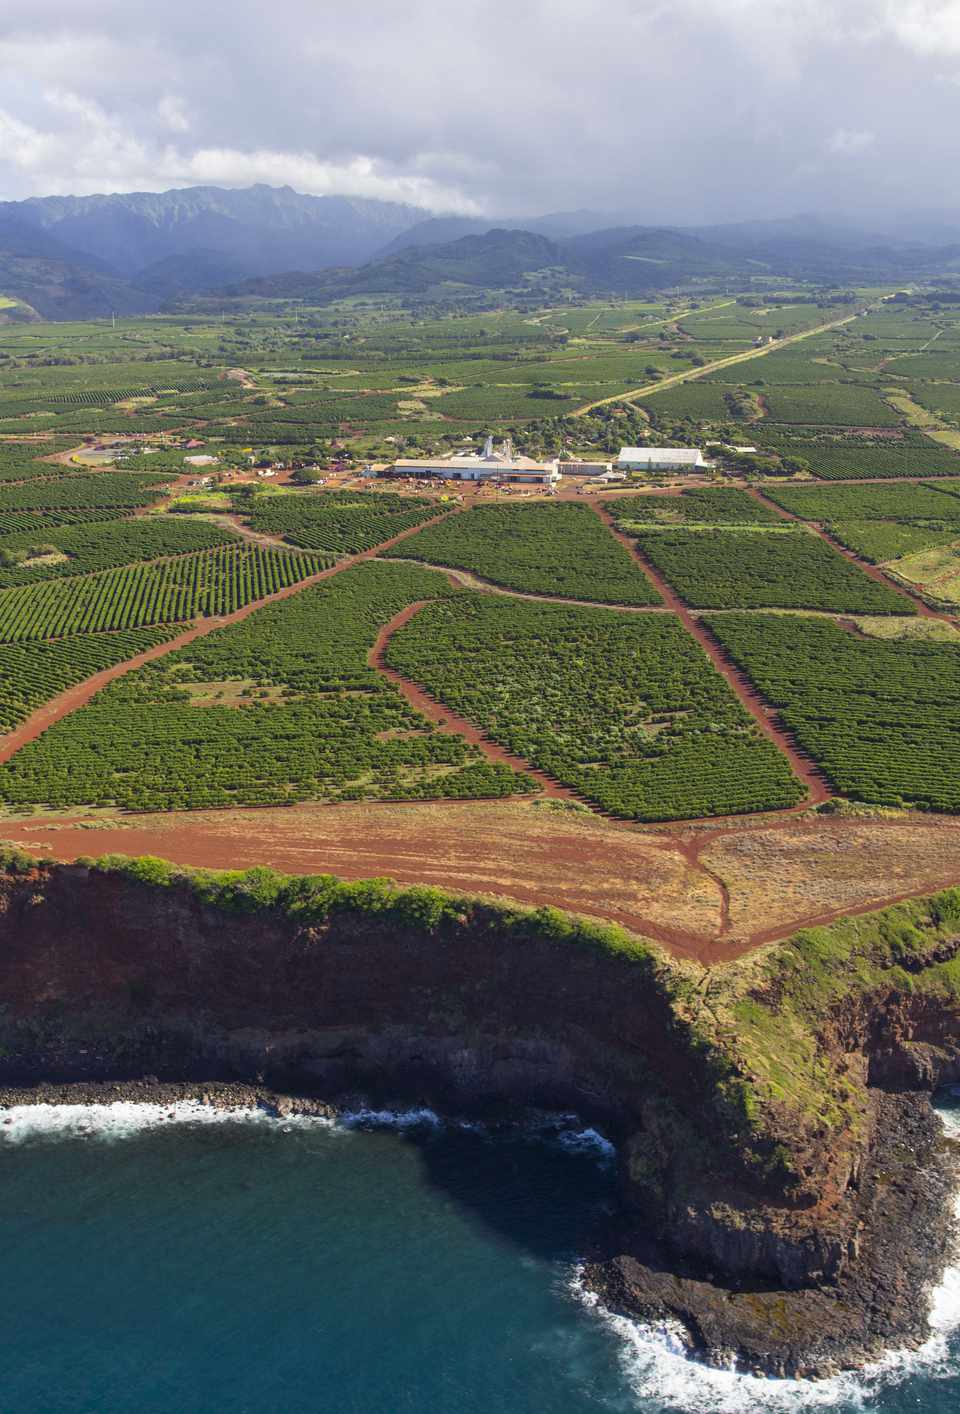 Aerial view of coastal cliffs and a coffee plantation on the island of Kauai, Hawaii